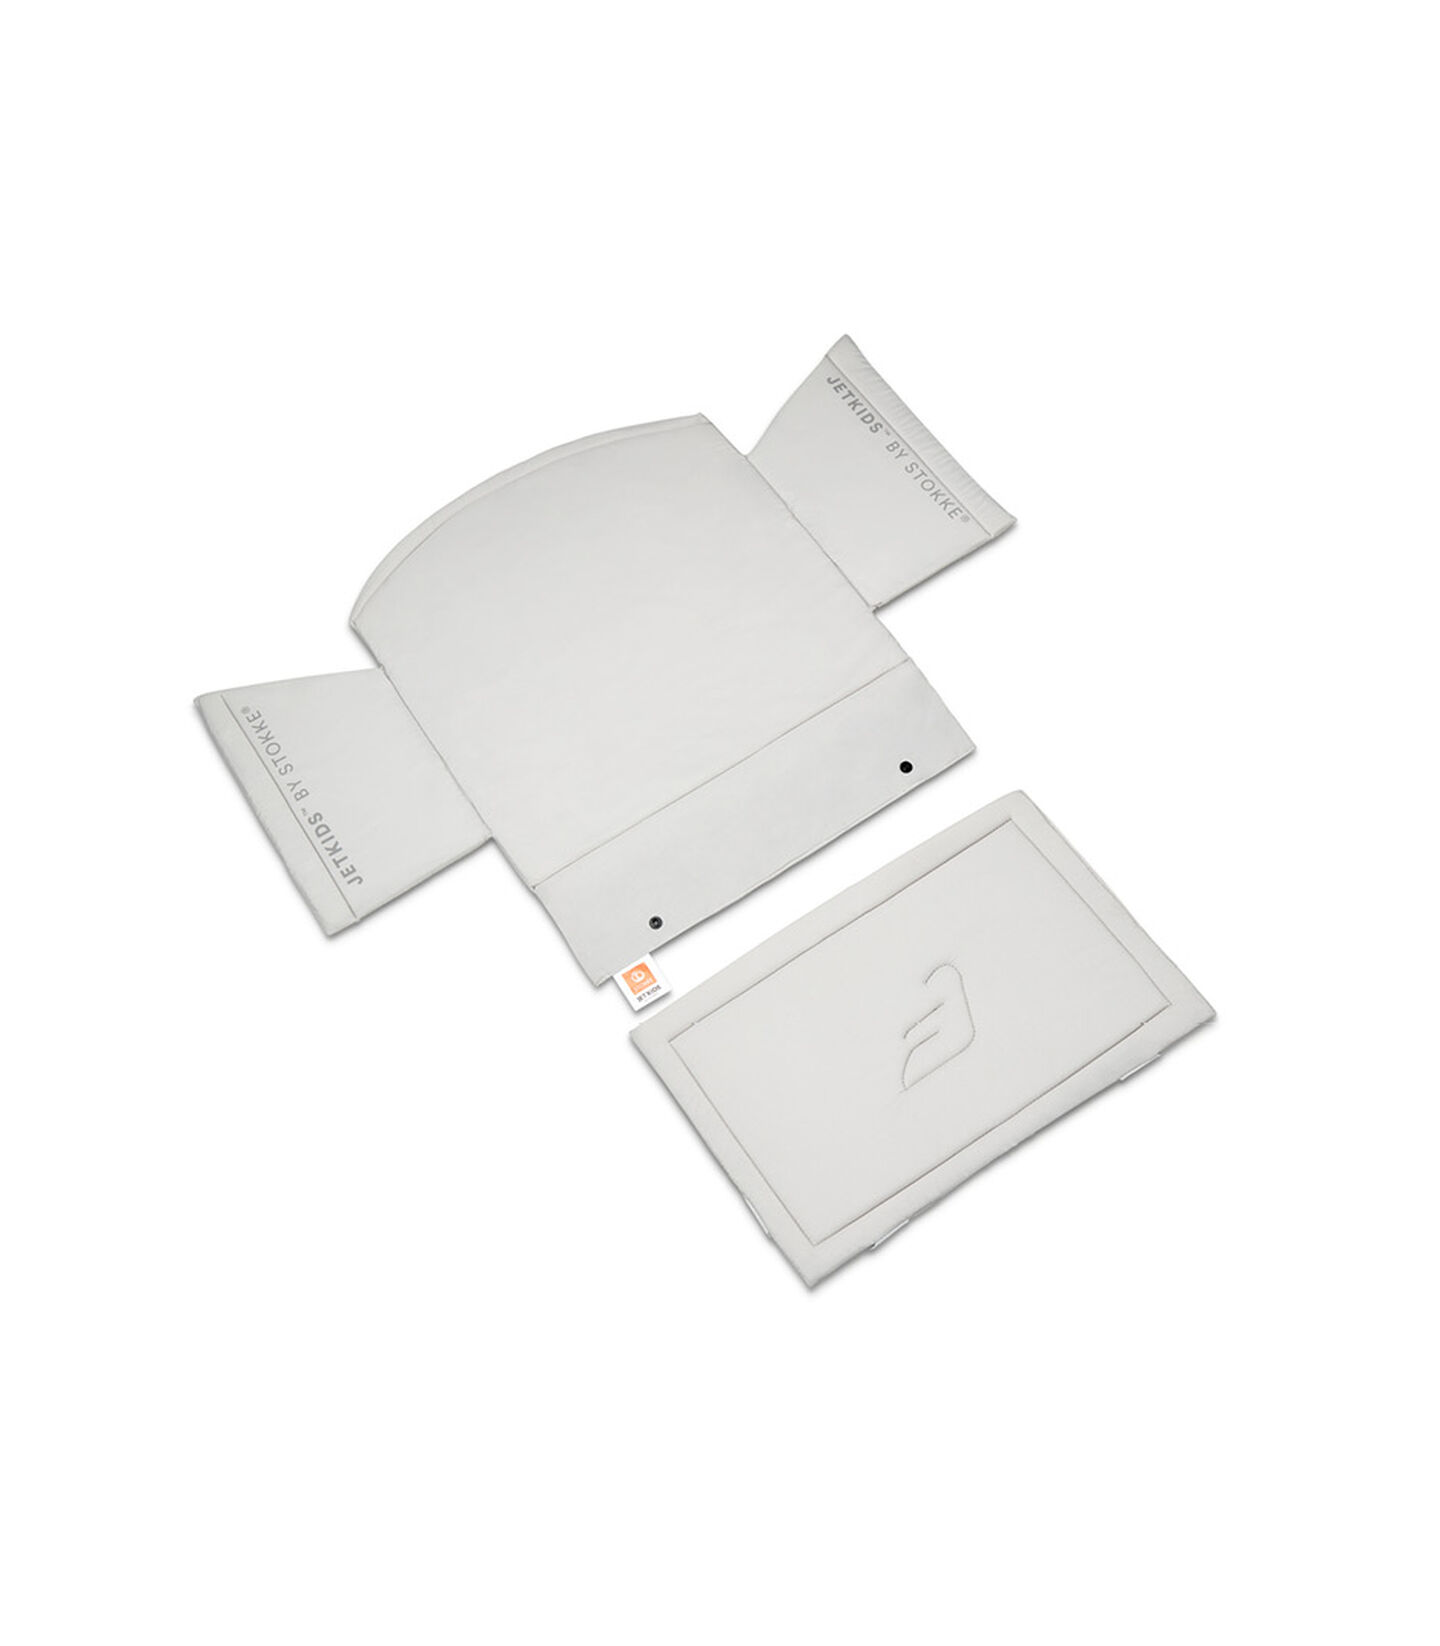 JetKids™ by Stokke® BedBox V3. Mattress. Spare Part. view 2